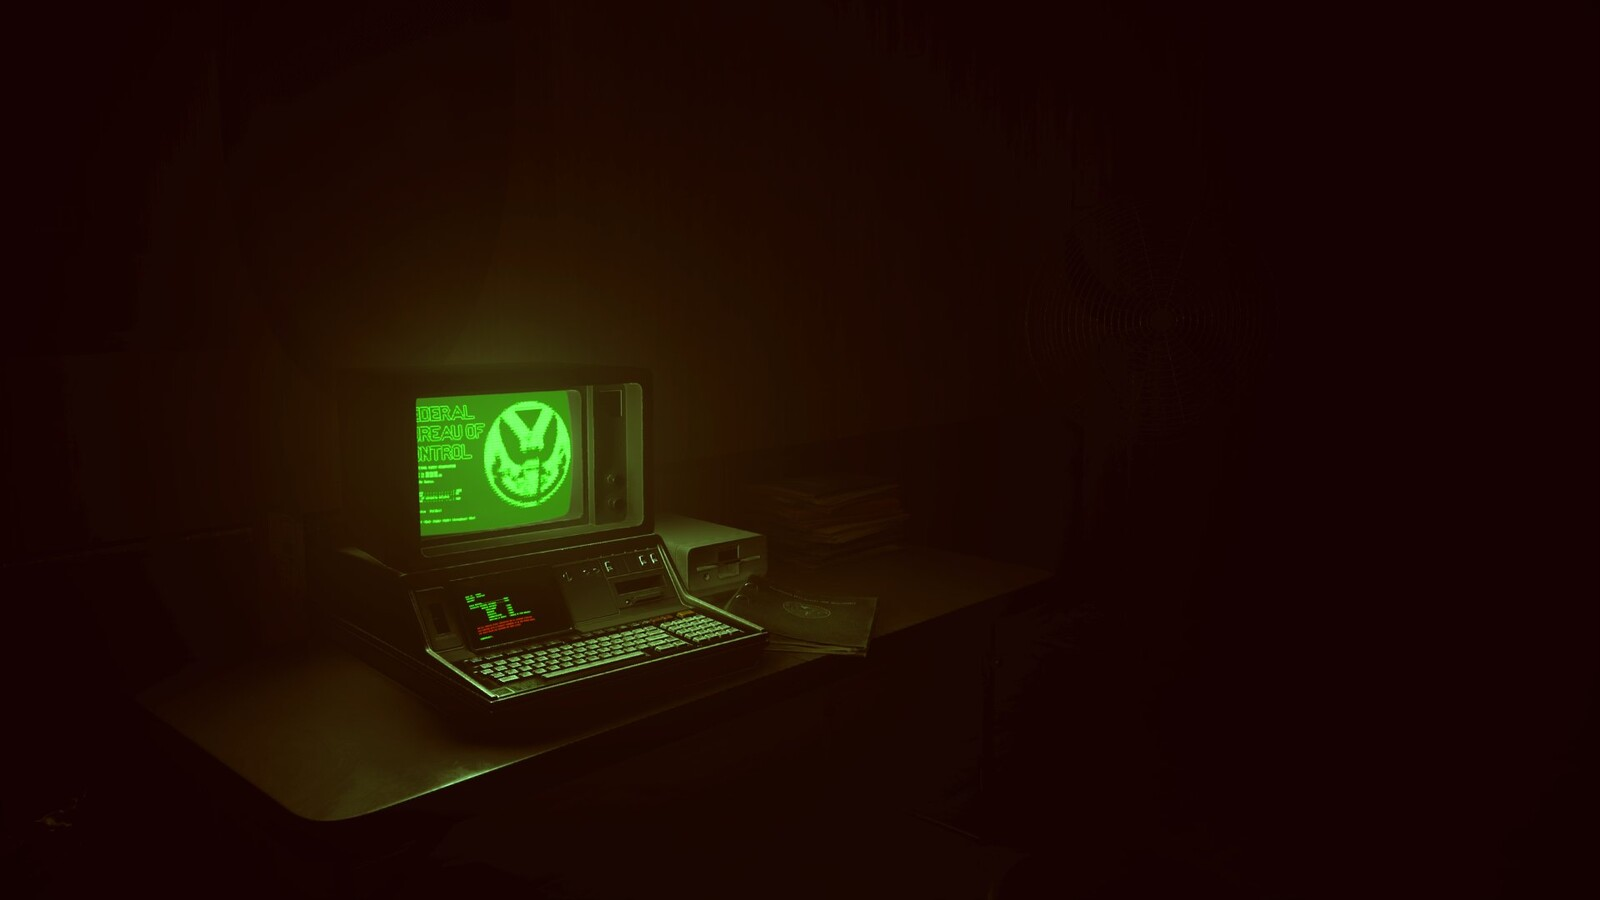 I created the desk, computer and floppy drive. Screenshot by Ewan Wilson.